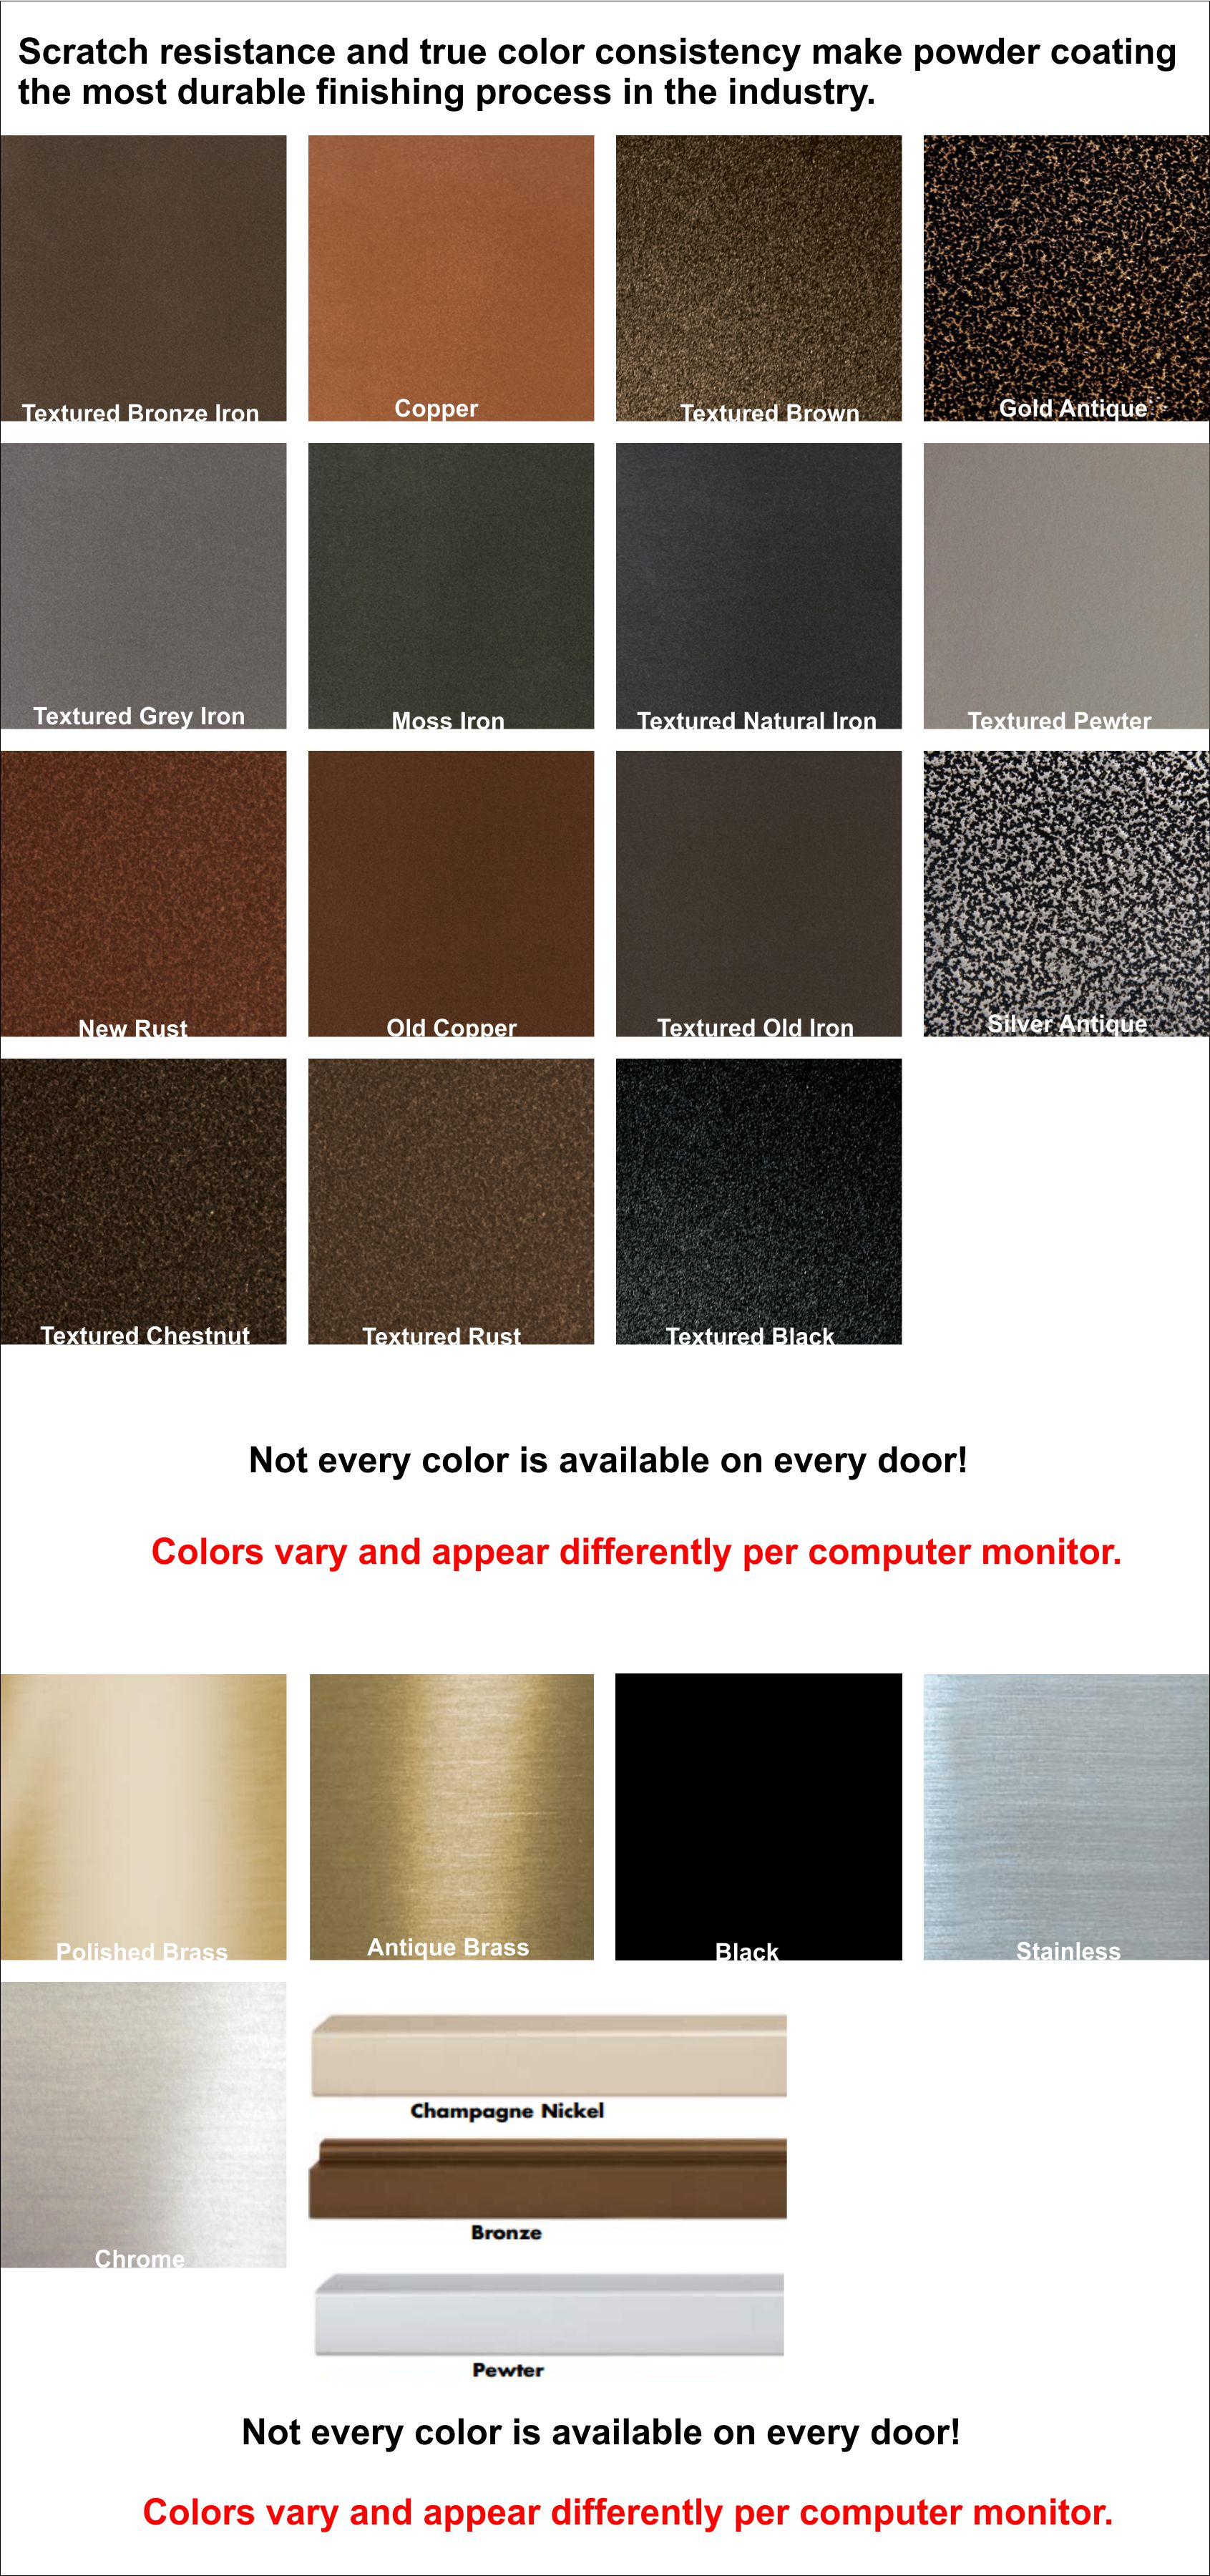 What color finish would you like for your fireplace doors?